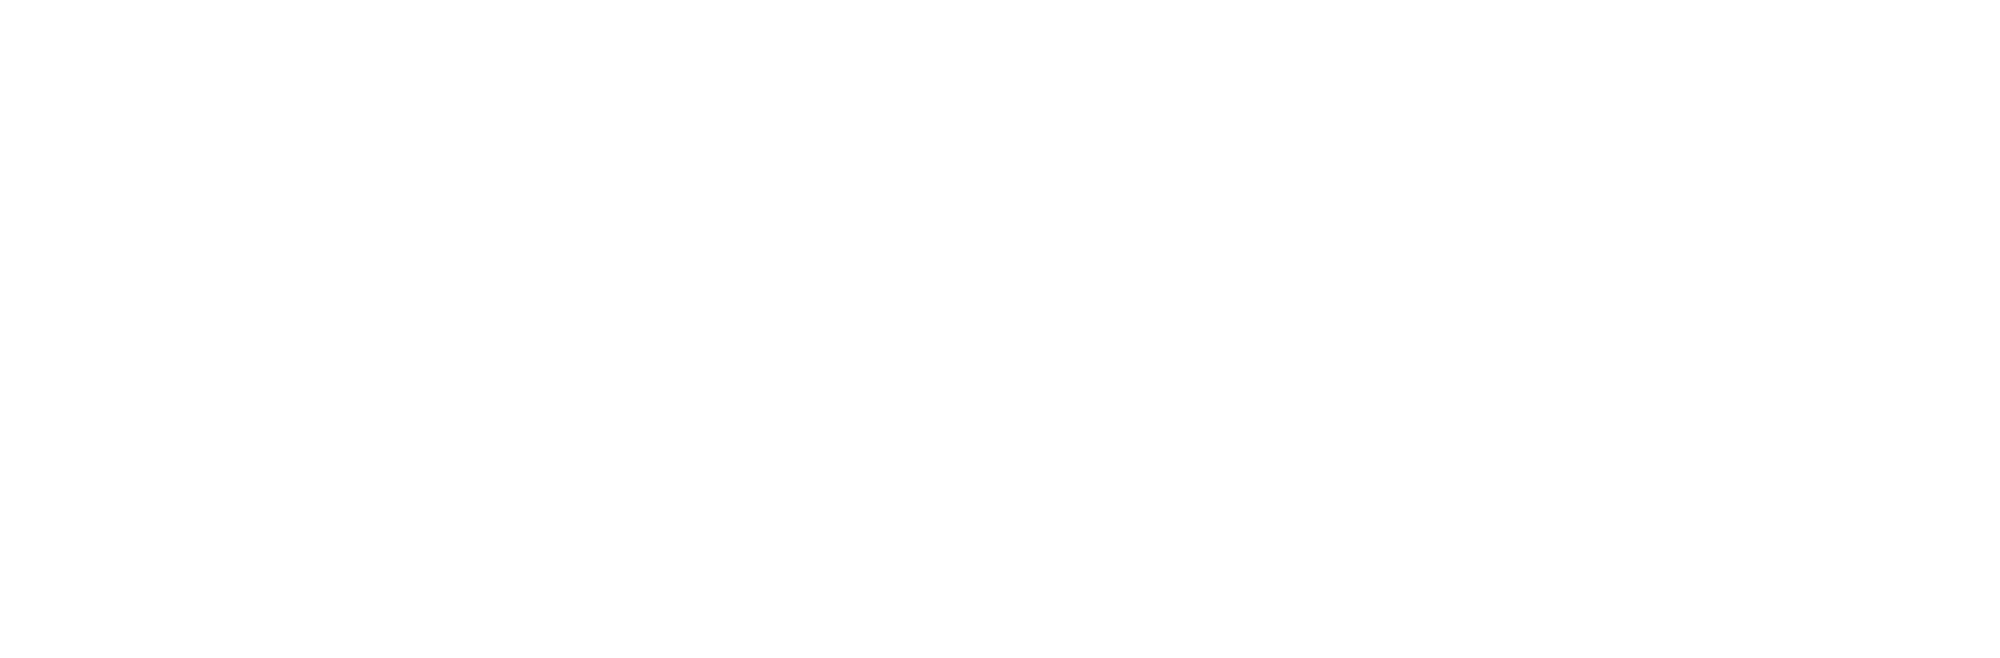 Bridal shows in illinois - Bloomington Bridal Show Logo Title